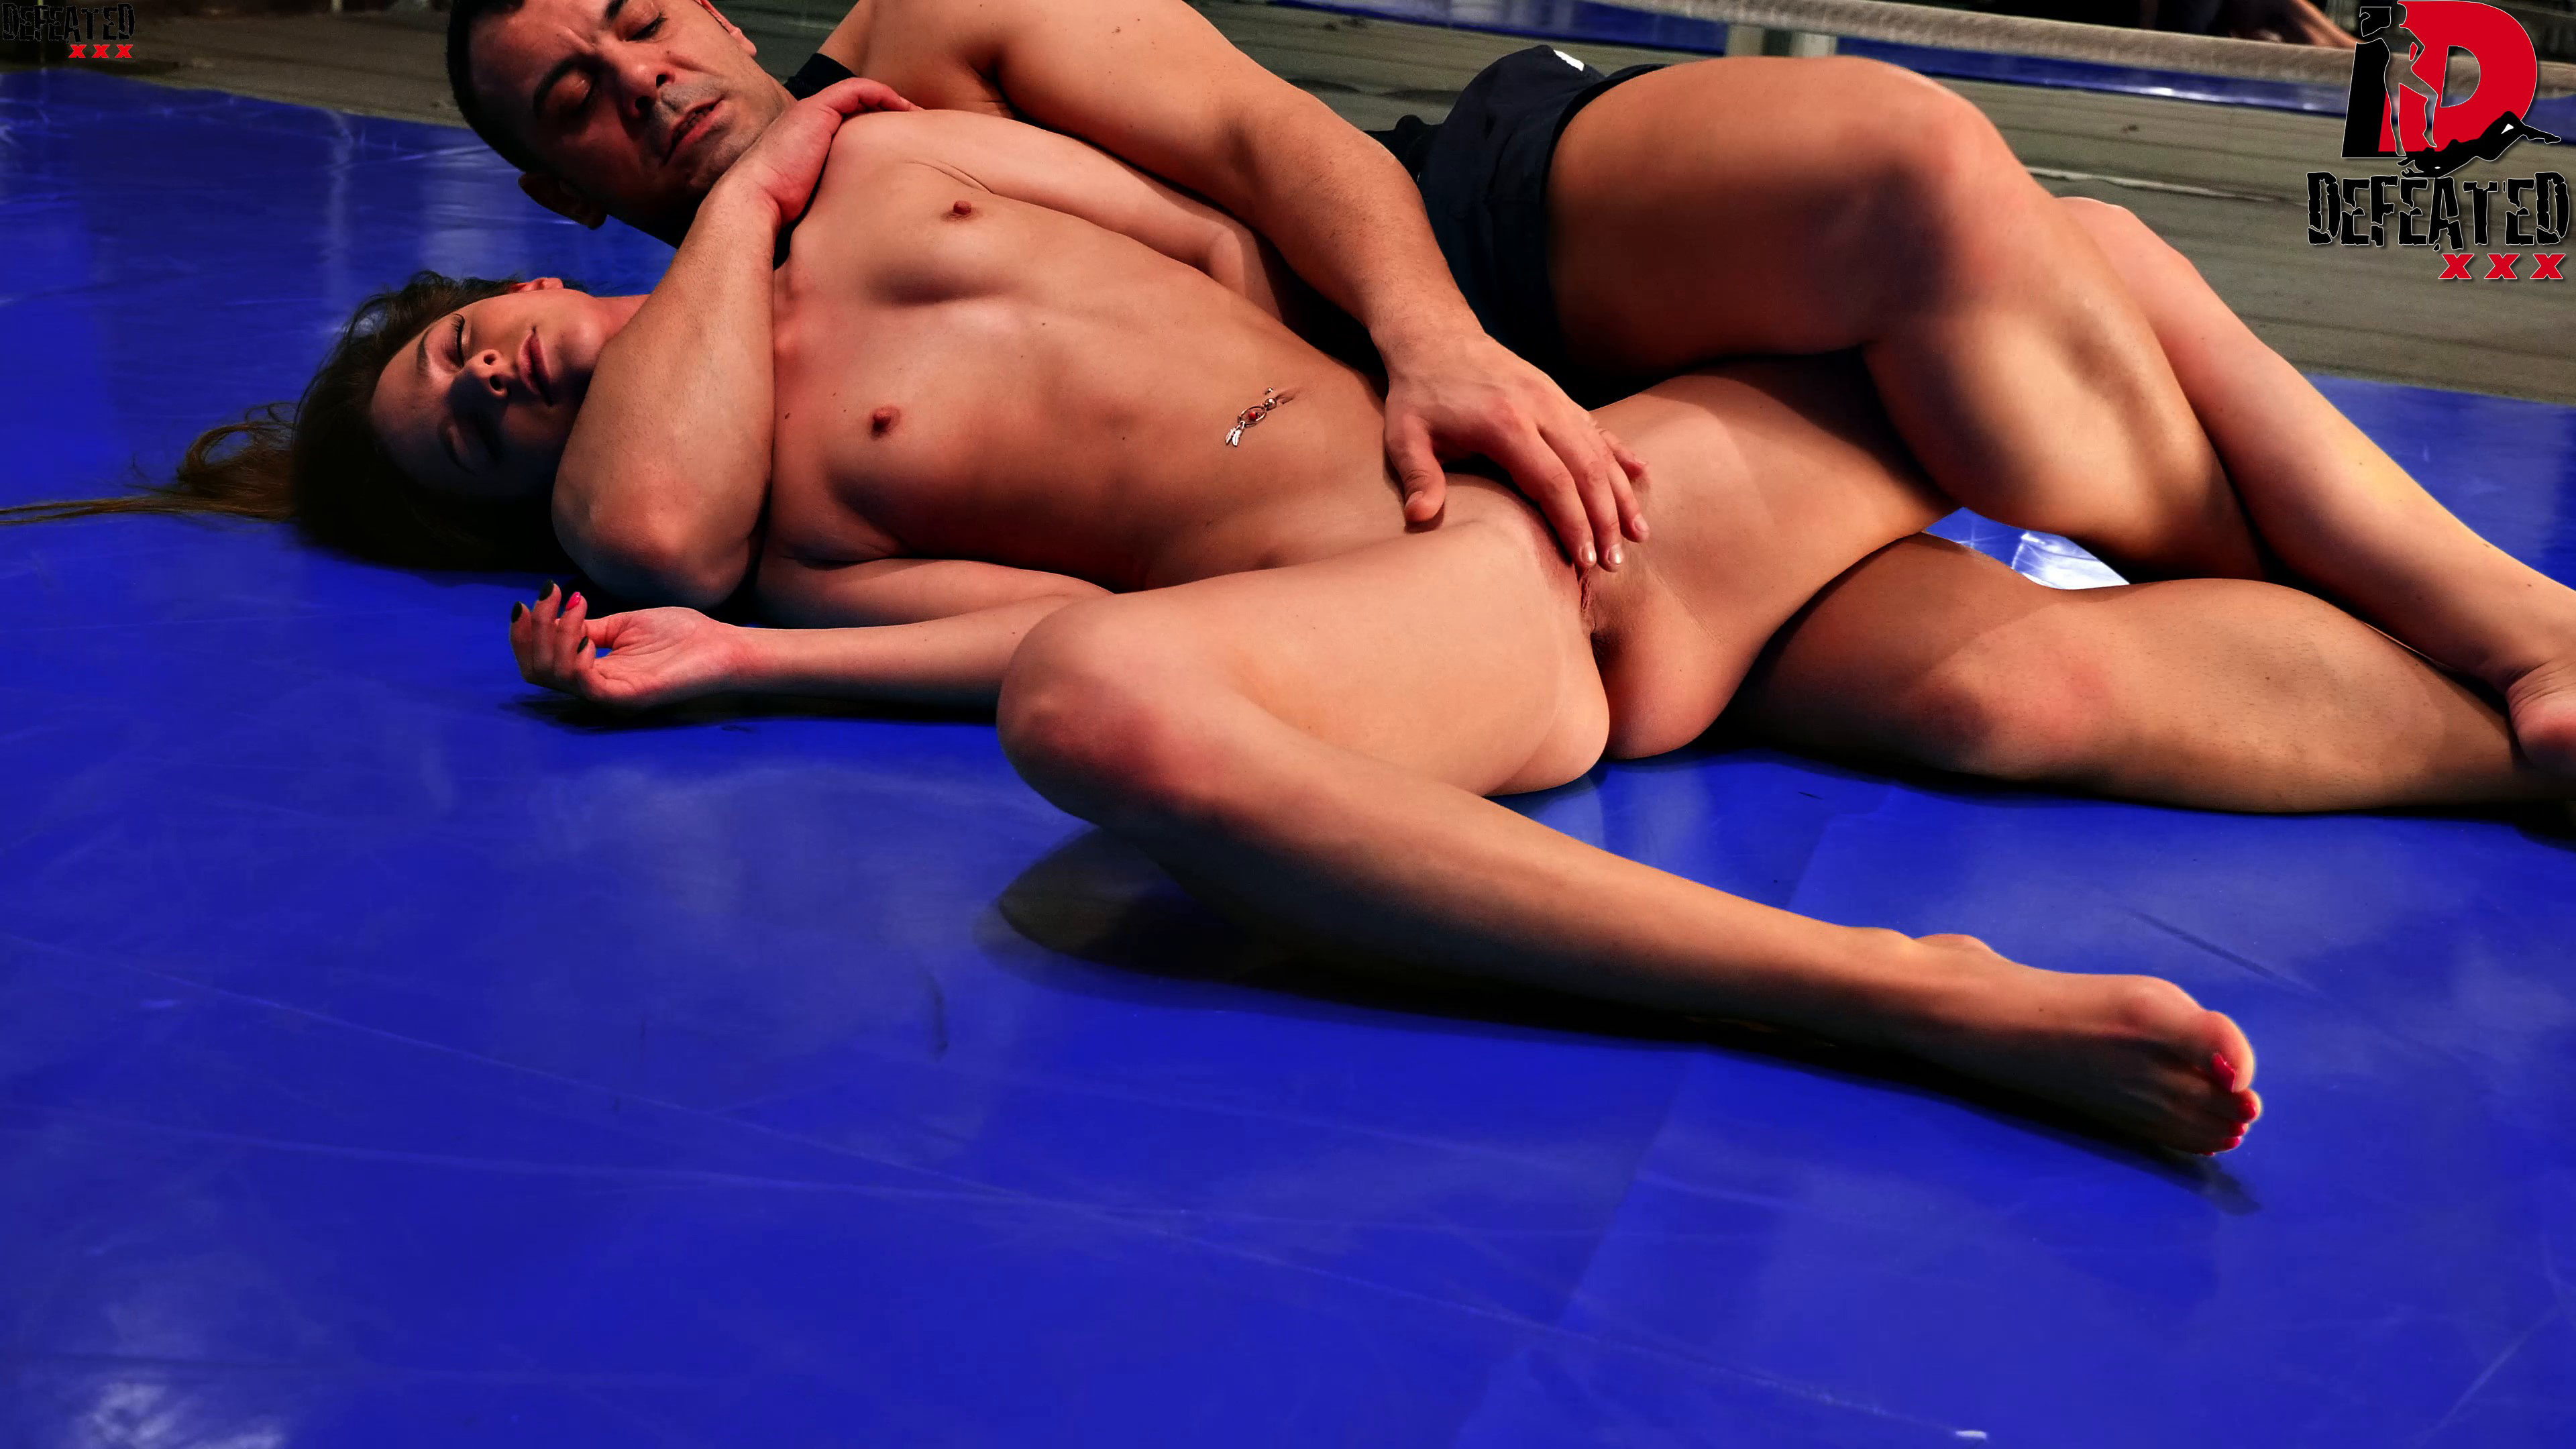 DEFEATED-MXD66---Amirah-Antonio-(138)